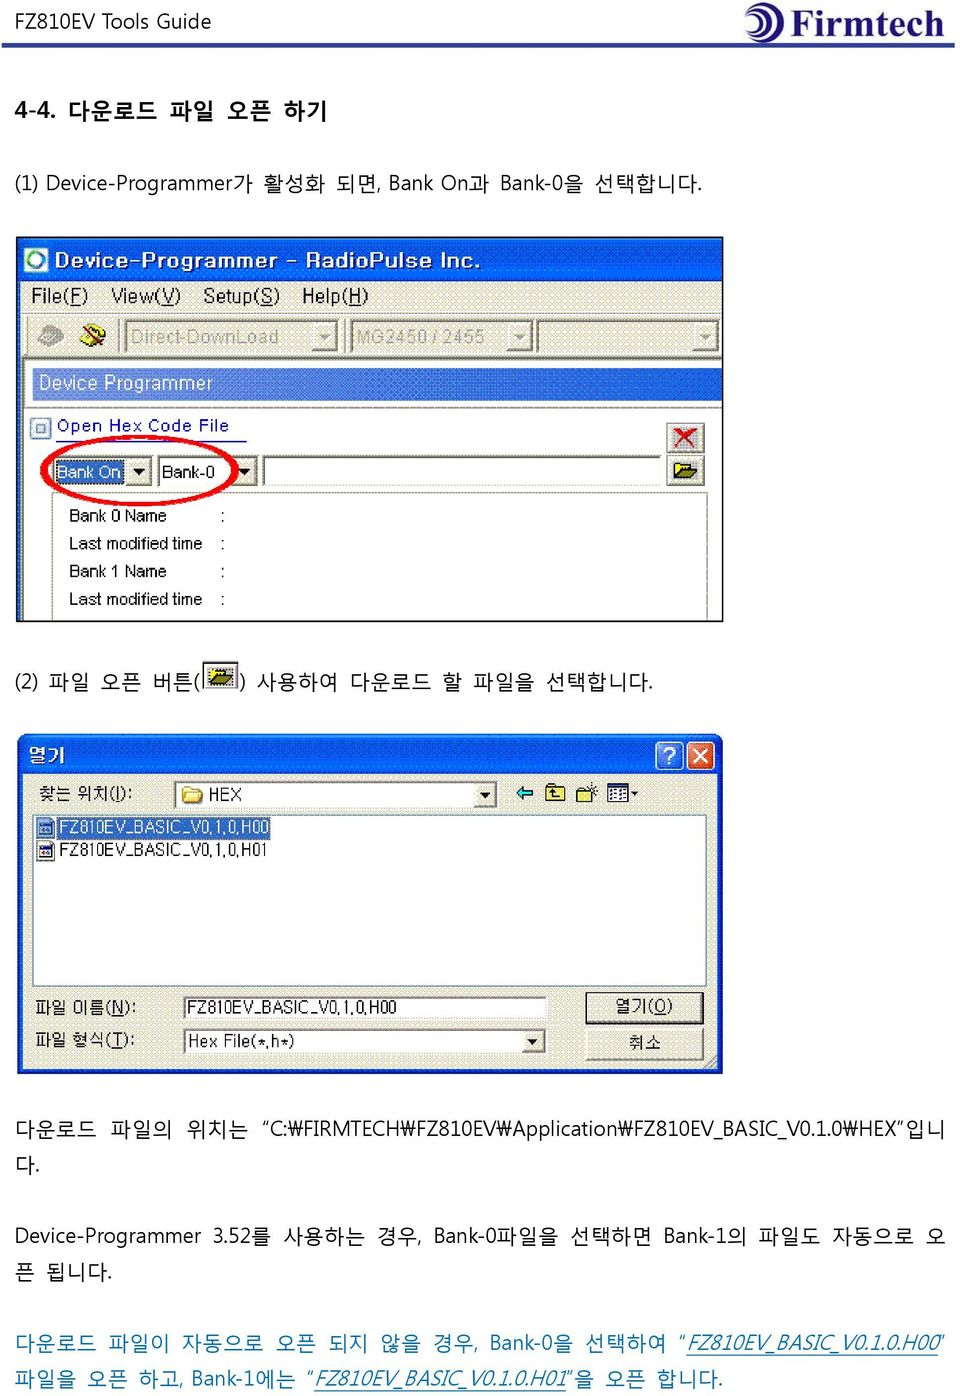 다운로드 파일의 위치는 C:\FIRMTECH\FZ810EV\Application\FZ810EV_BASIC_V0.1.0\HEX 입니 다. Device-Programmer 3.